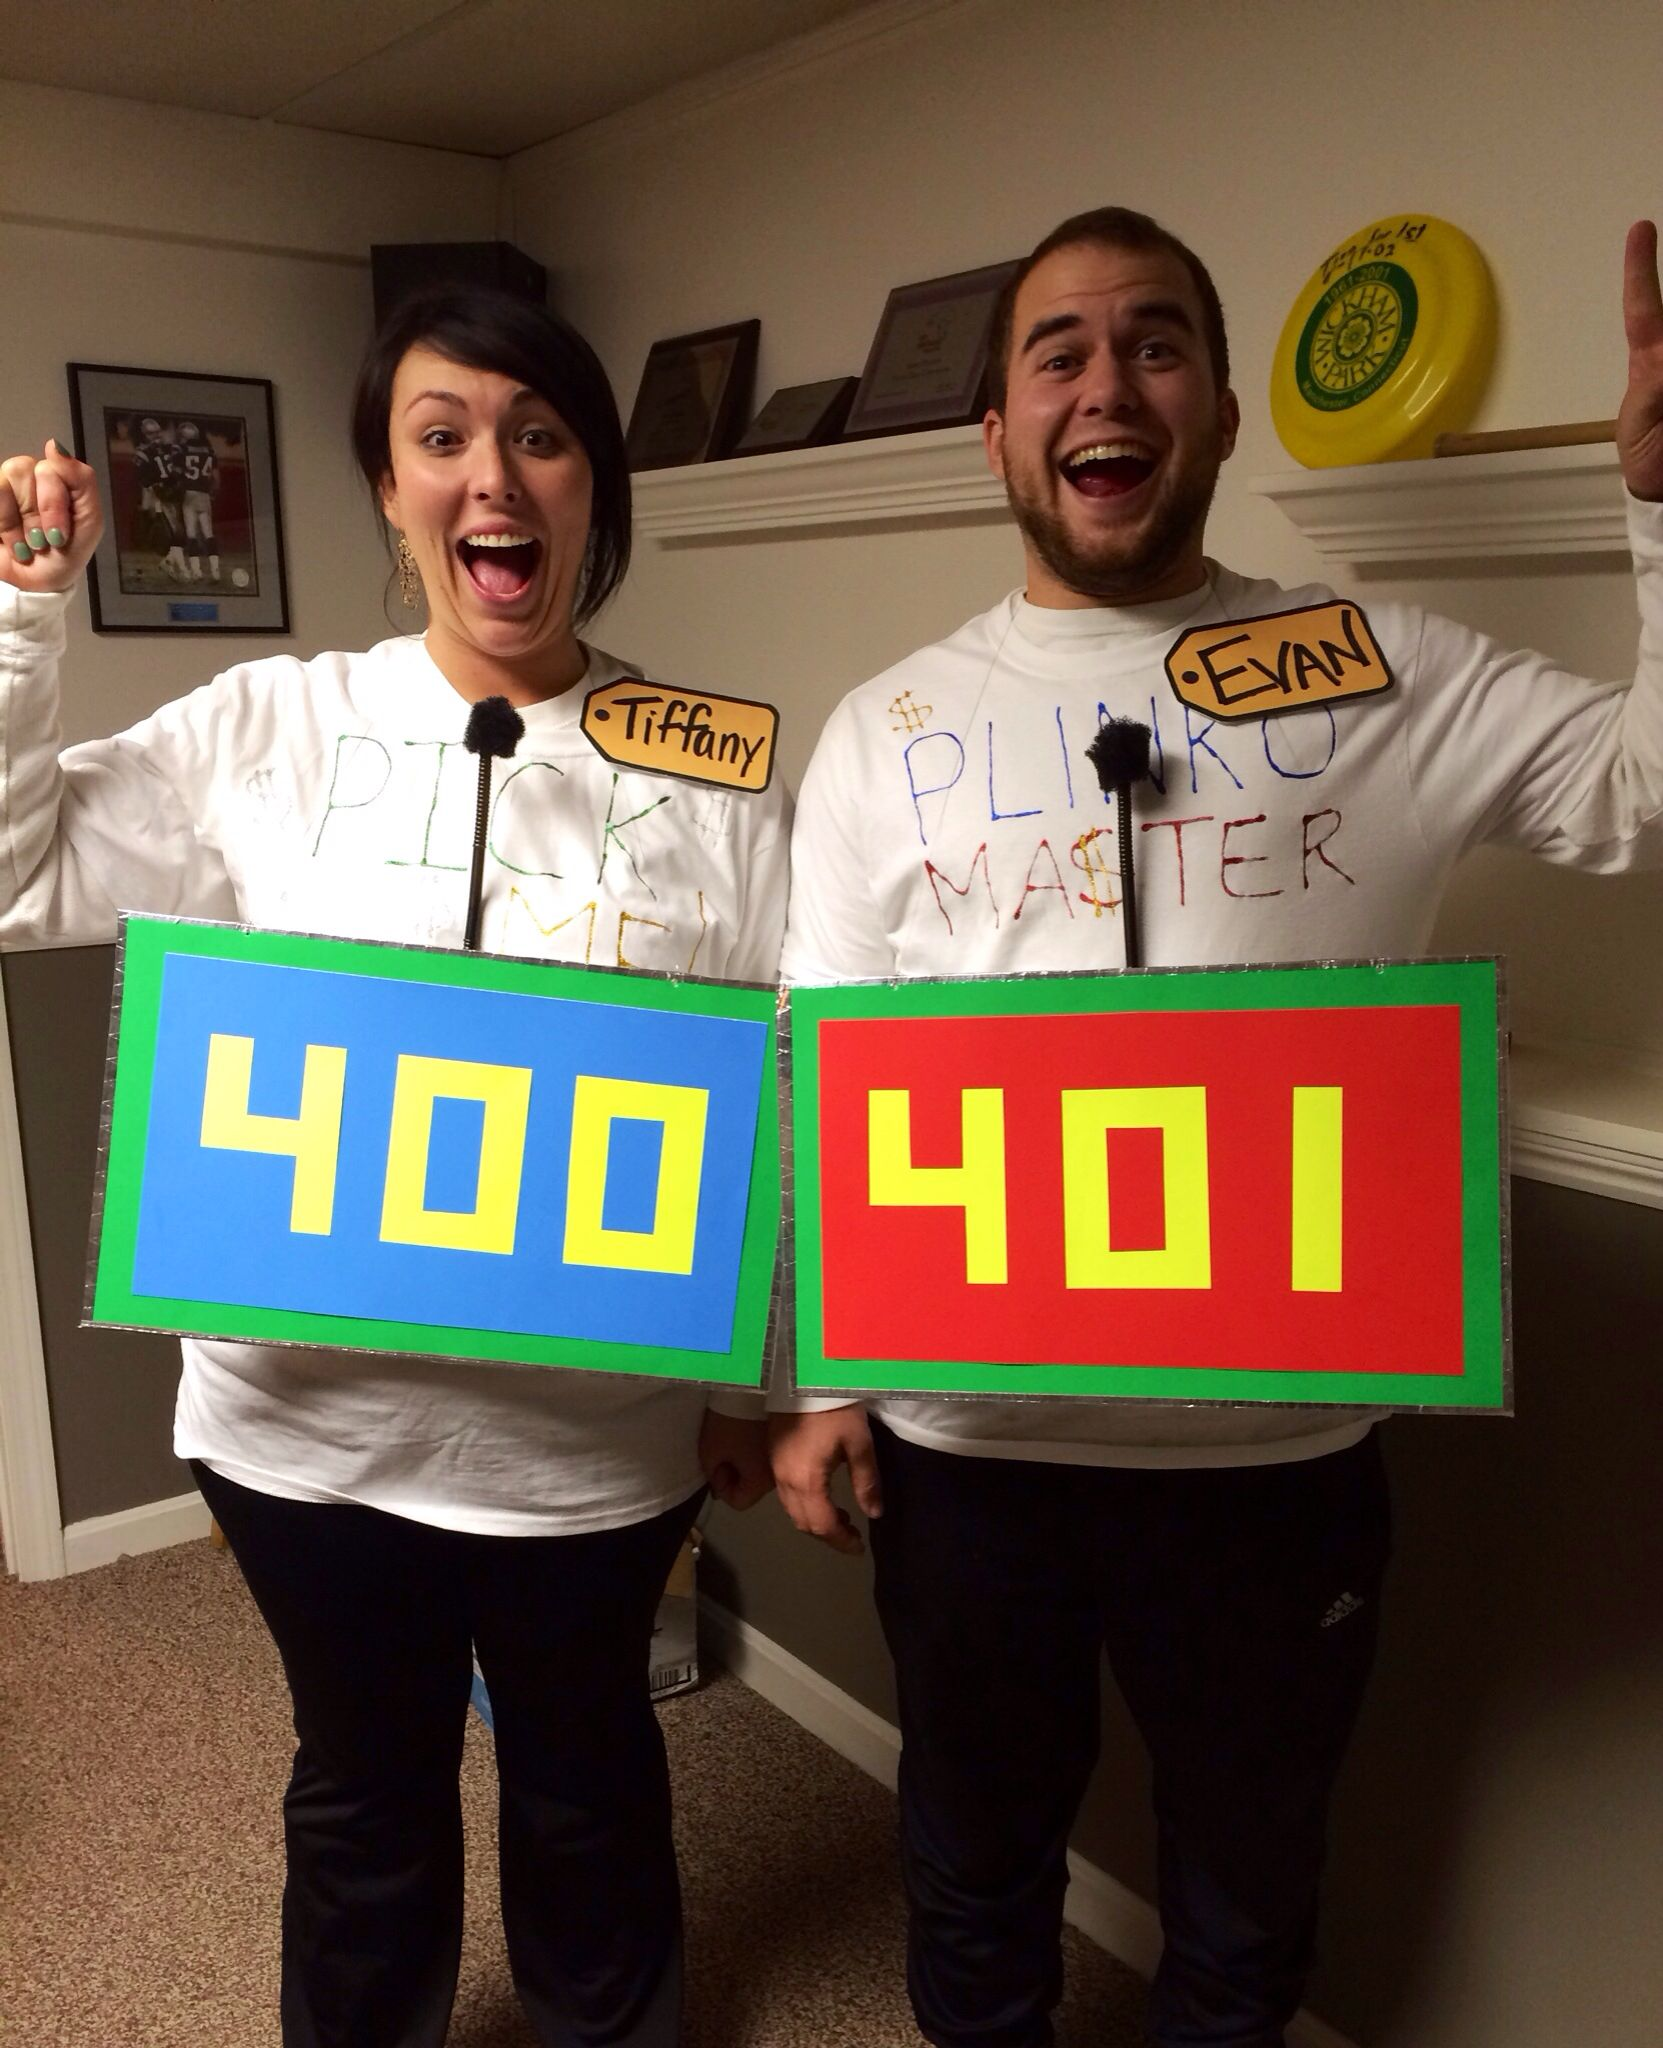 Halloween costumes homemade costumes couple costume price is right halloween costumes homemade costumes couple costume price is right solutioingenieria Images